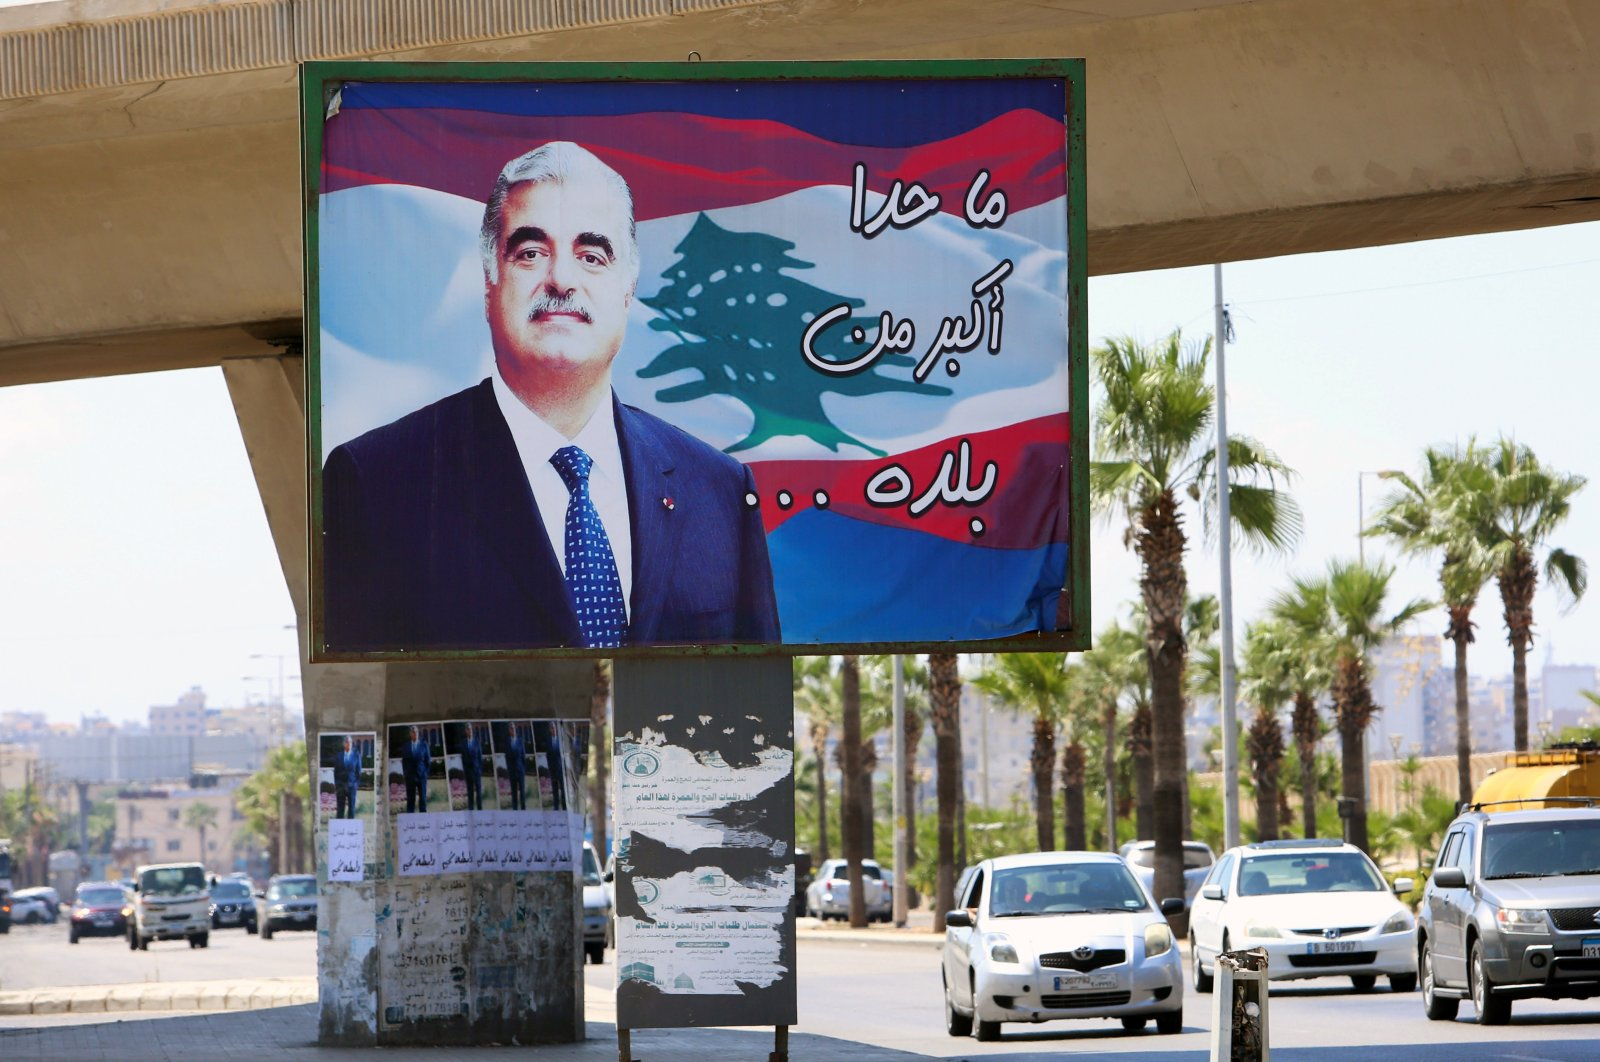 A billboard depicting Lebanon's former Prime Minister Rafik Hariri, who was killed in a bombing in 2005, is pictured in Sidon, southern Lebanon, Aug. 18, 2020. (Reuters Photo)